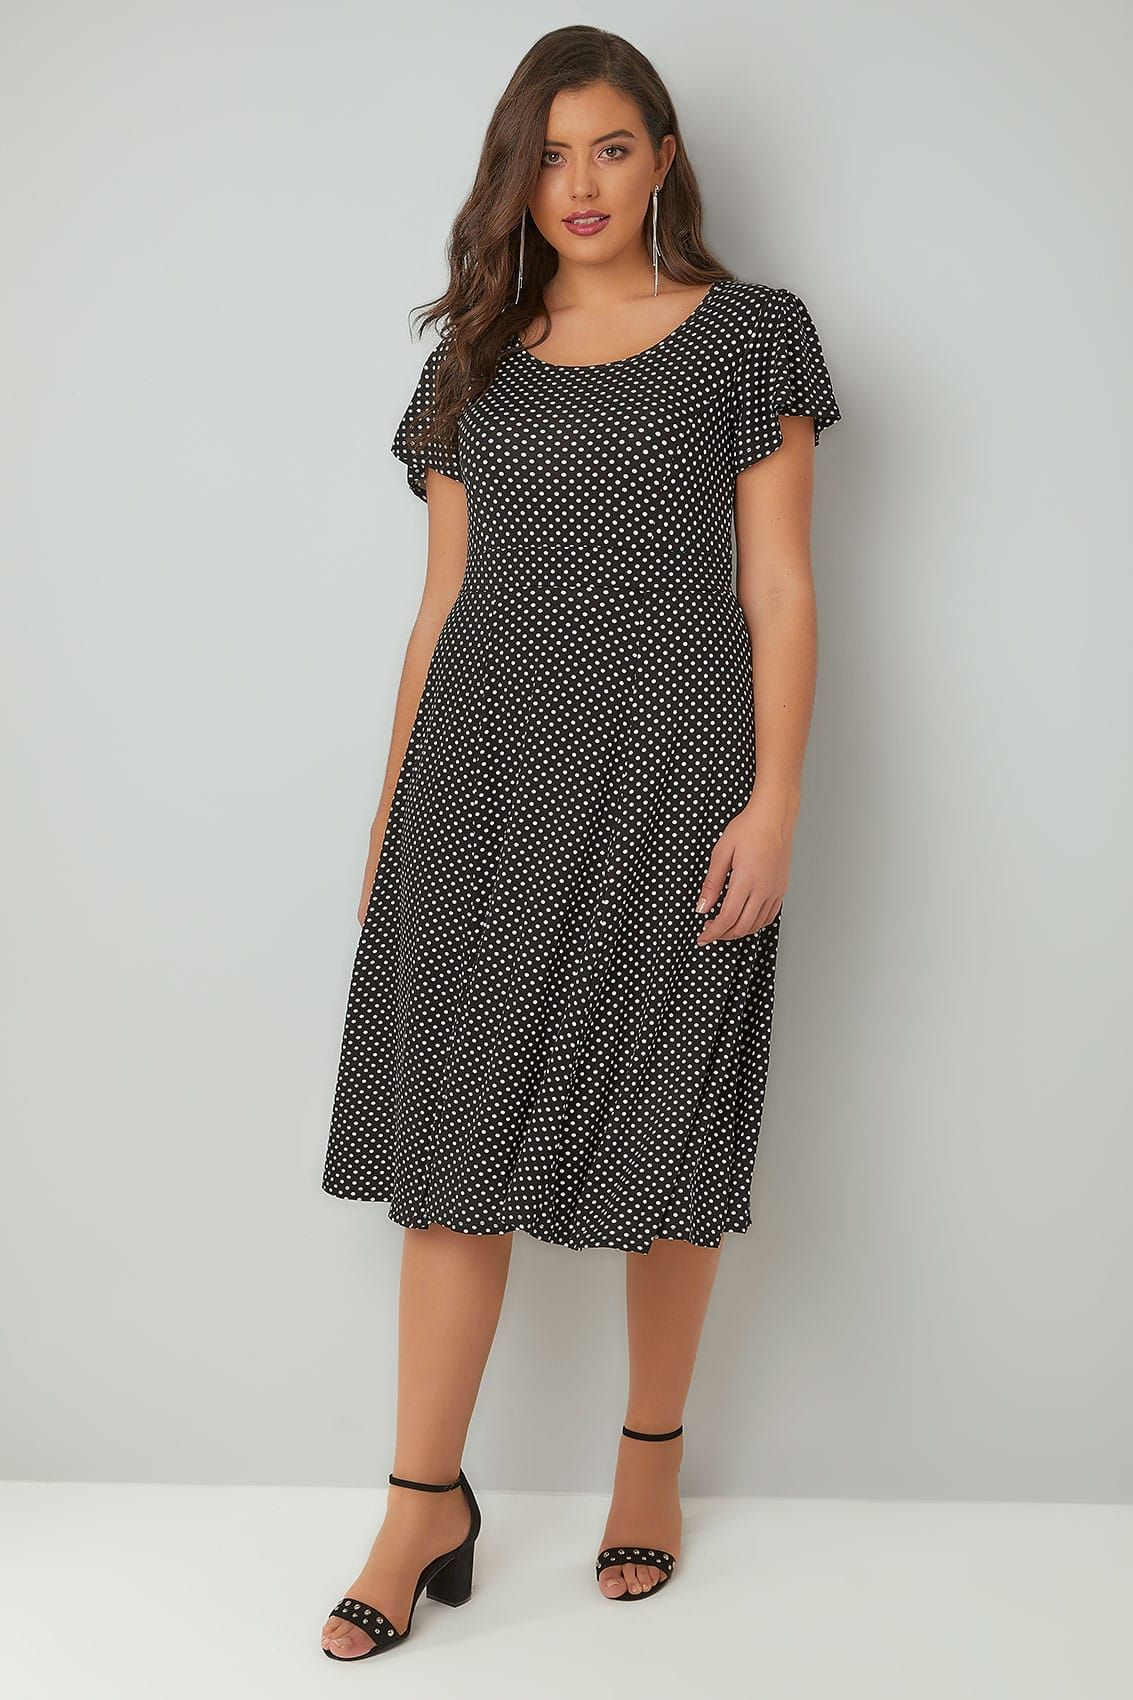 3718b2801ad Black   White Polka Dot Dress With Self-Tie Waist   Angel Sleeves